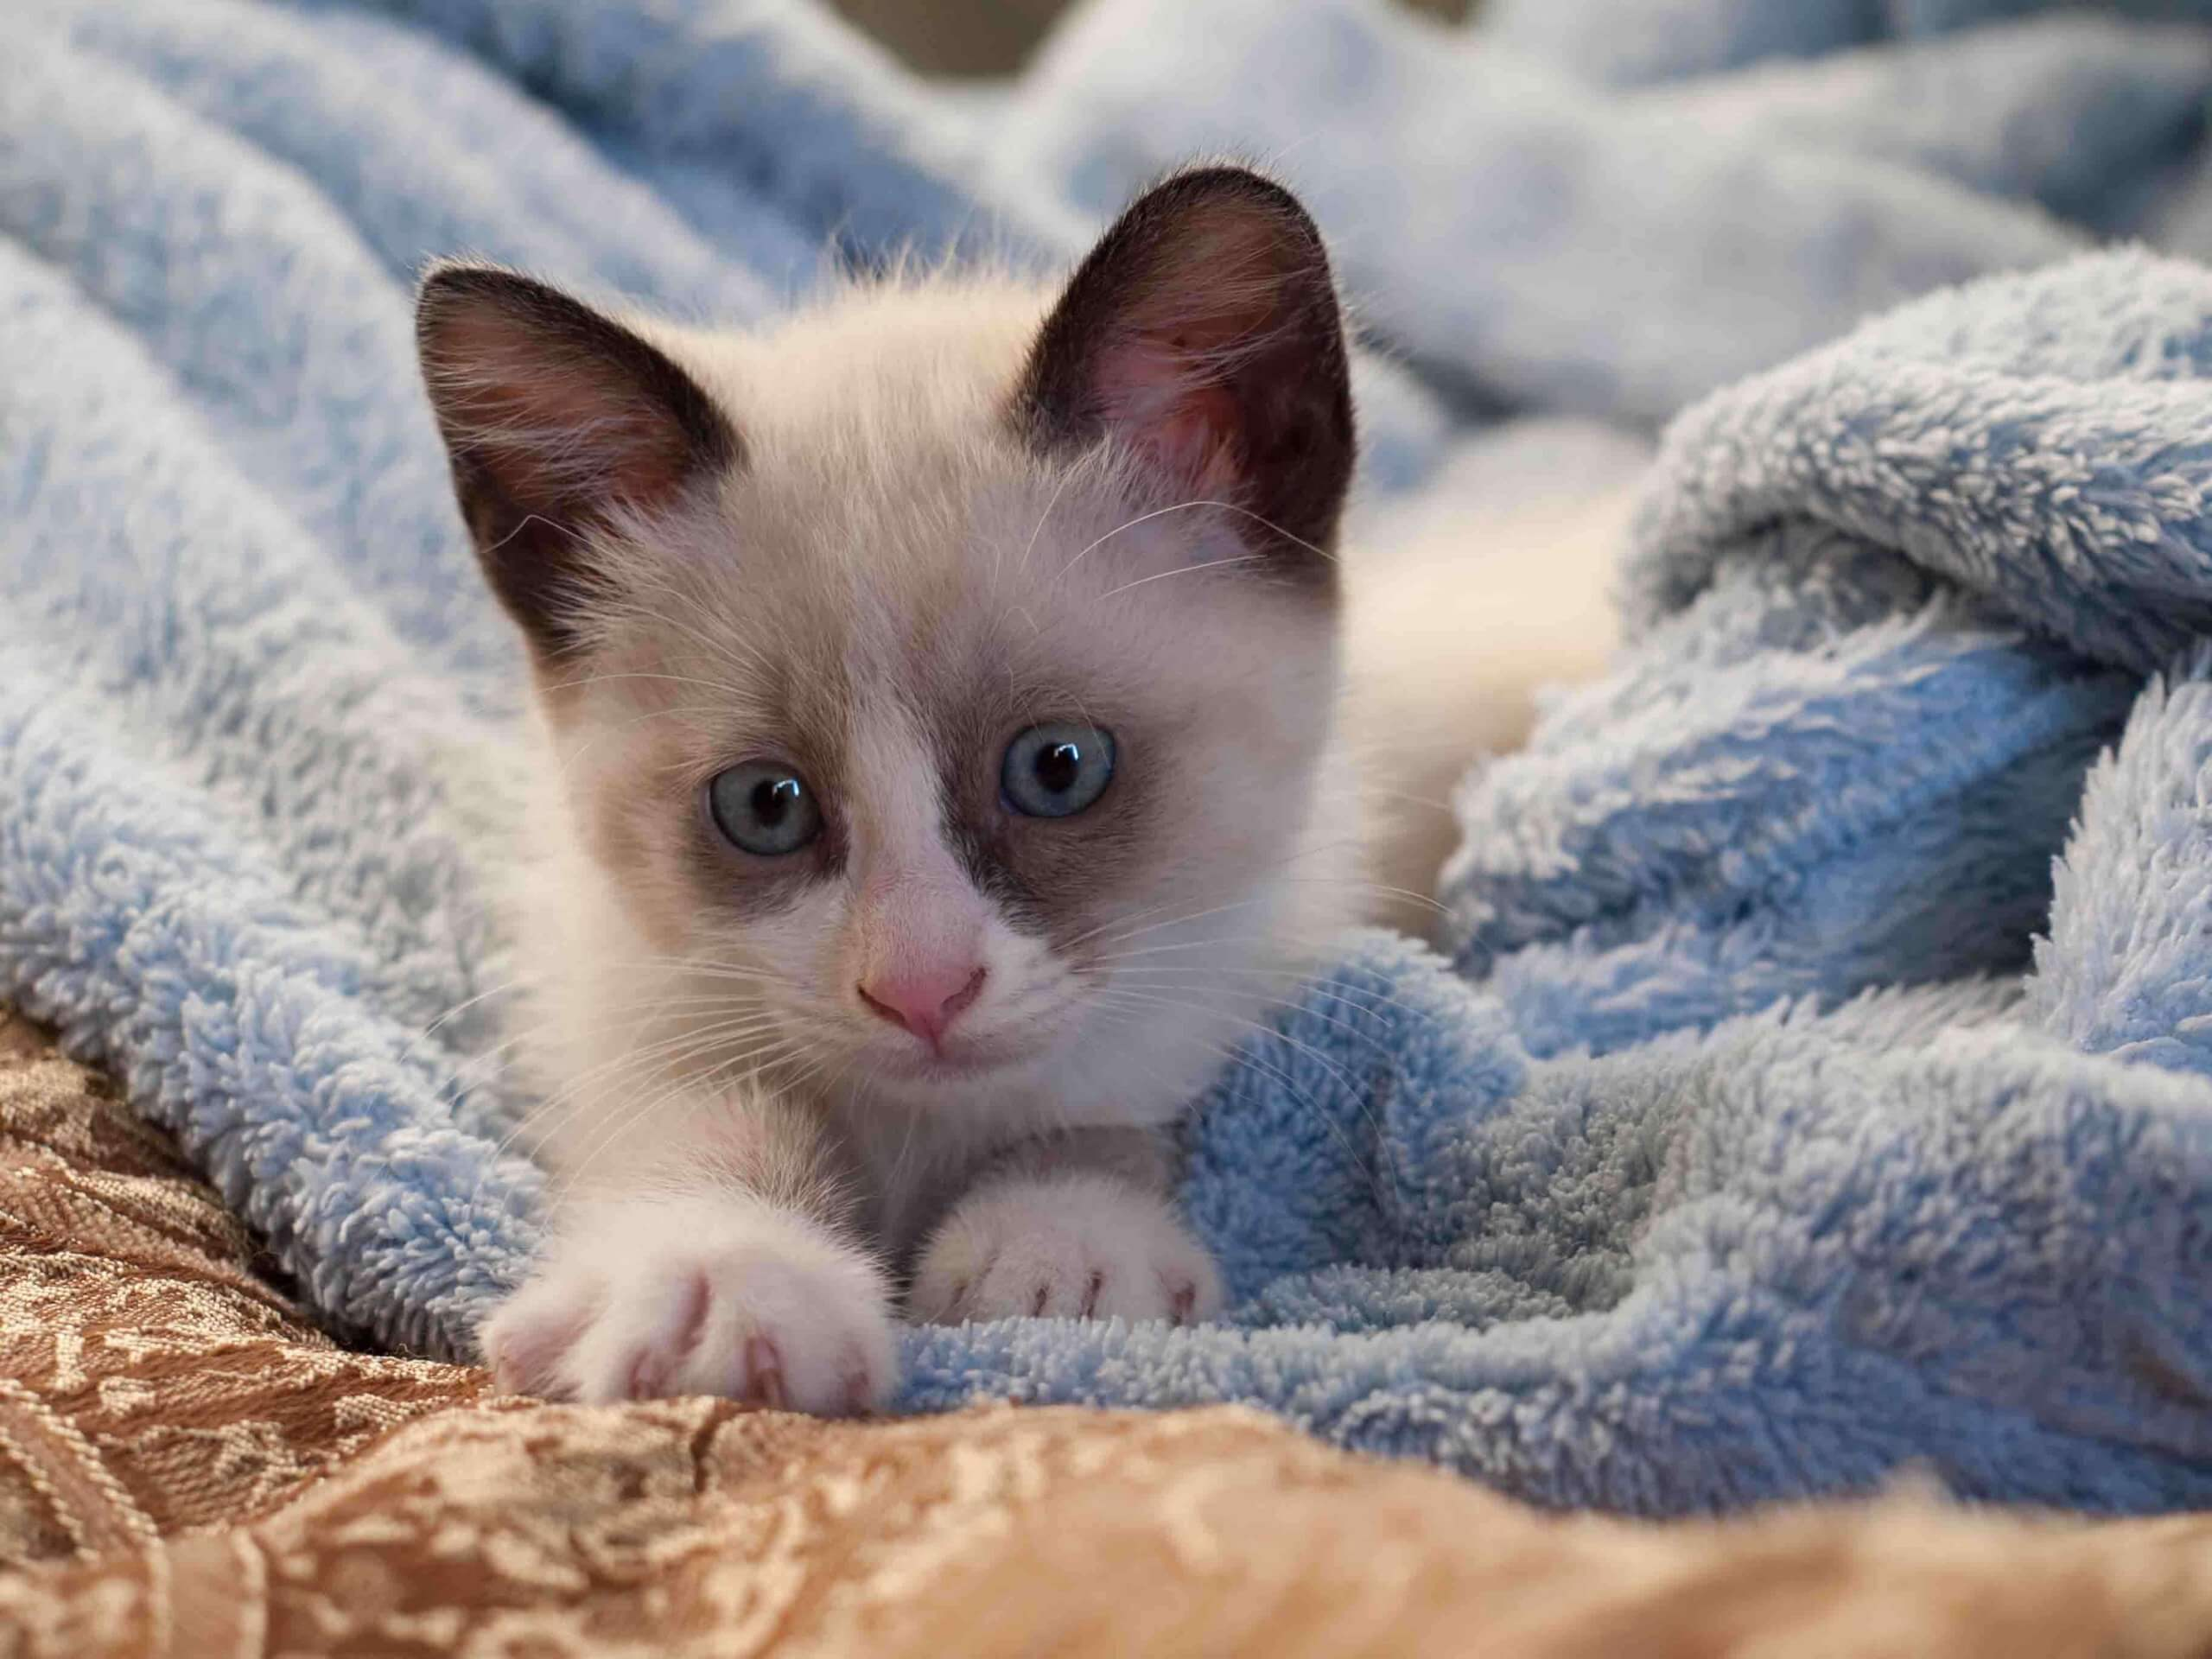 A Snowshoe kitten in a blue blanket.